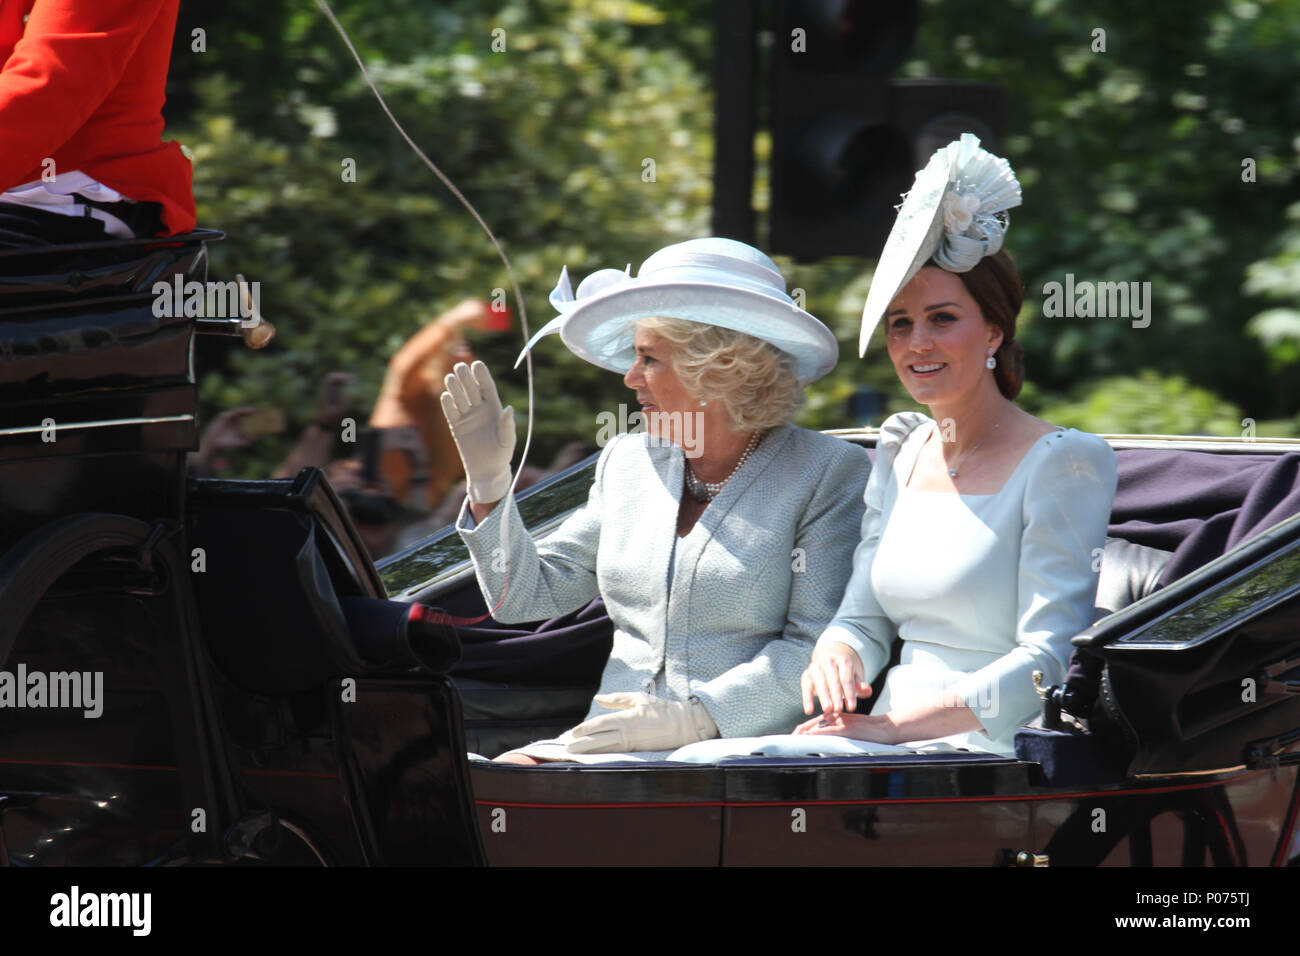 London, UK 9 June 2018: Camila the Duchess of Cornwall with Catherine, Duchess of Cambridge seen on a horse drawn carriage as they make their way to the Horse Guards Parade Ground on 9 June 2018. Over 1400 parading soldiers, 200 horses and 400 musicians come together each June in a great display of military precision, horsemanship and fanfare to mark The Queen's official birthday. Credit: David Mbiyu/Alamy - Stock Image